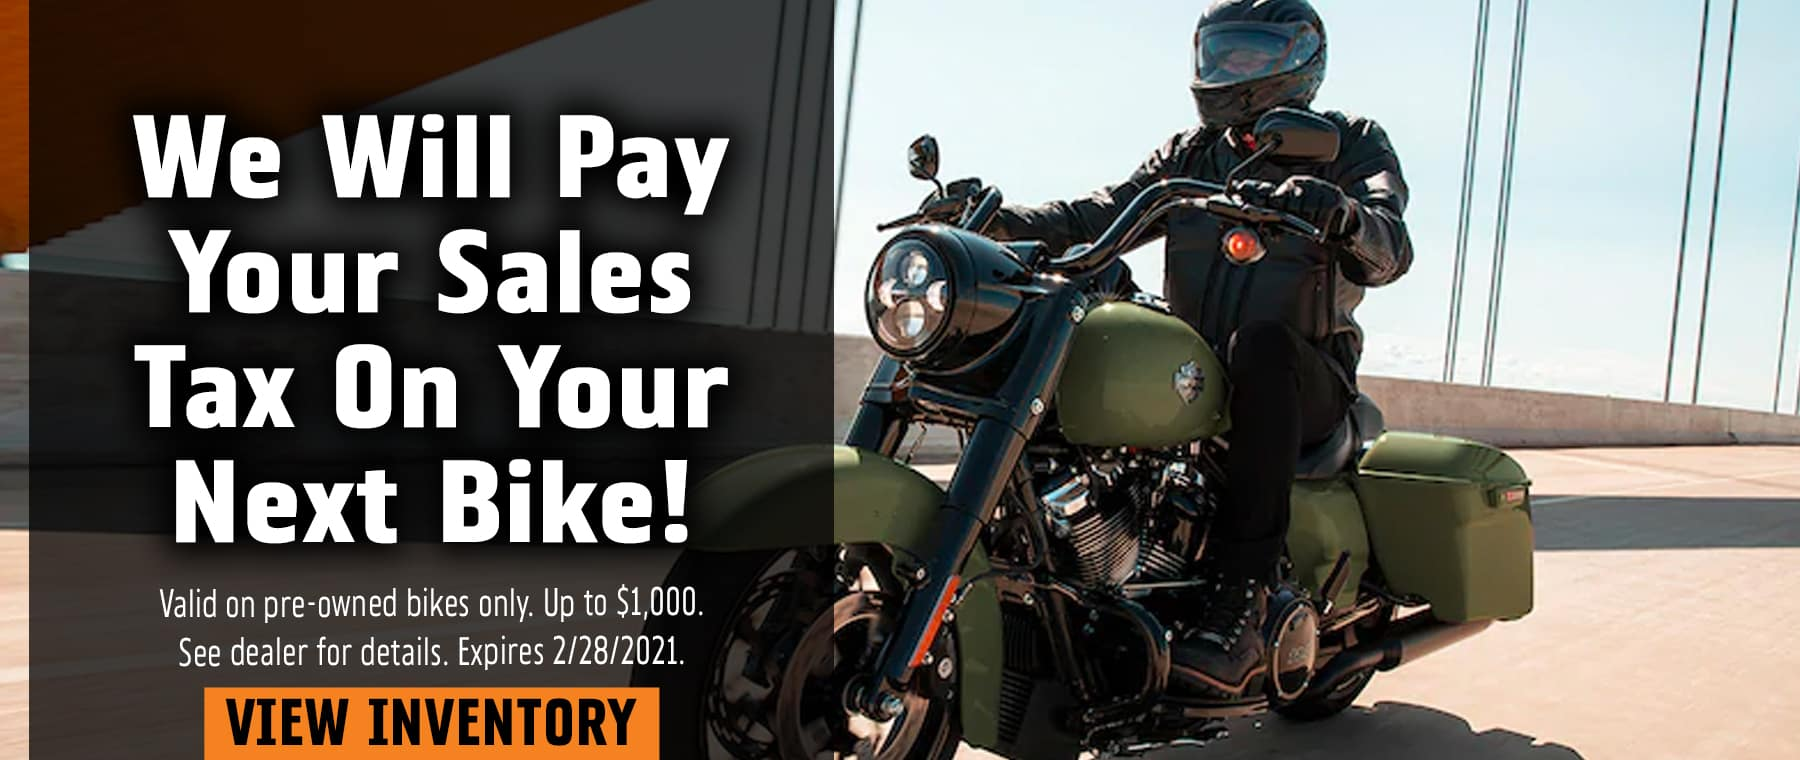 We Will Pay Your Sales Tax On Your Next Bike!